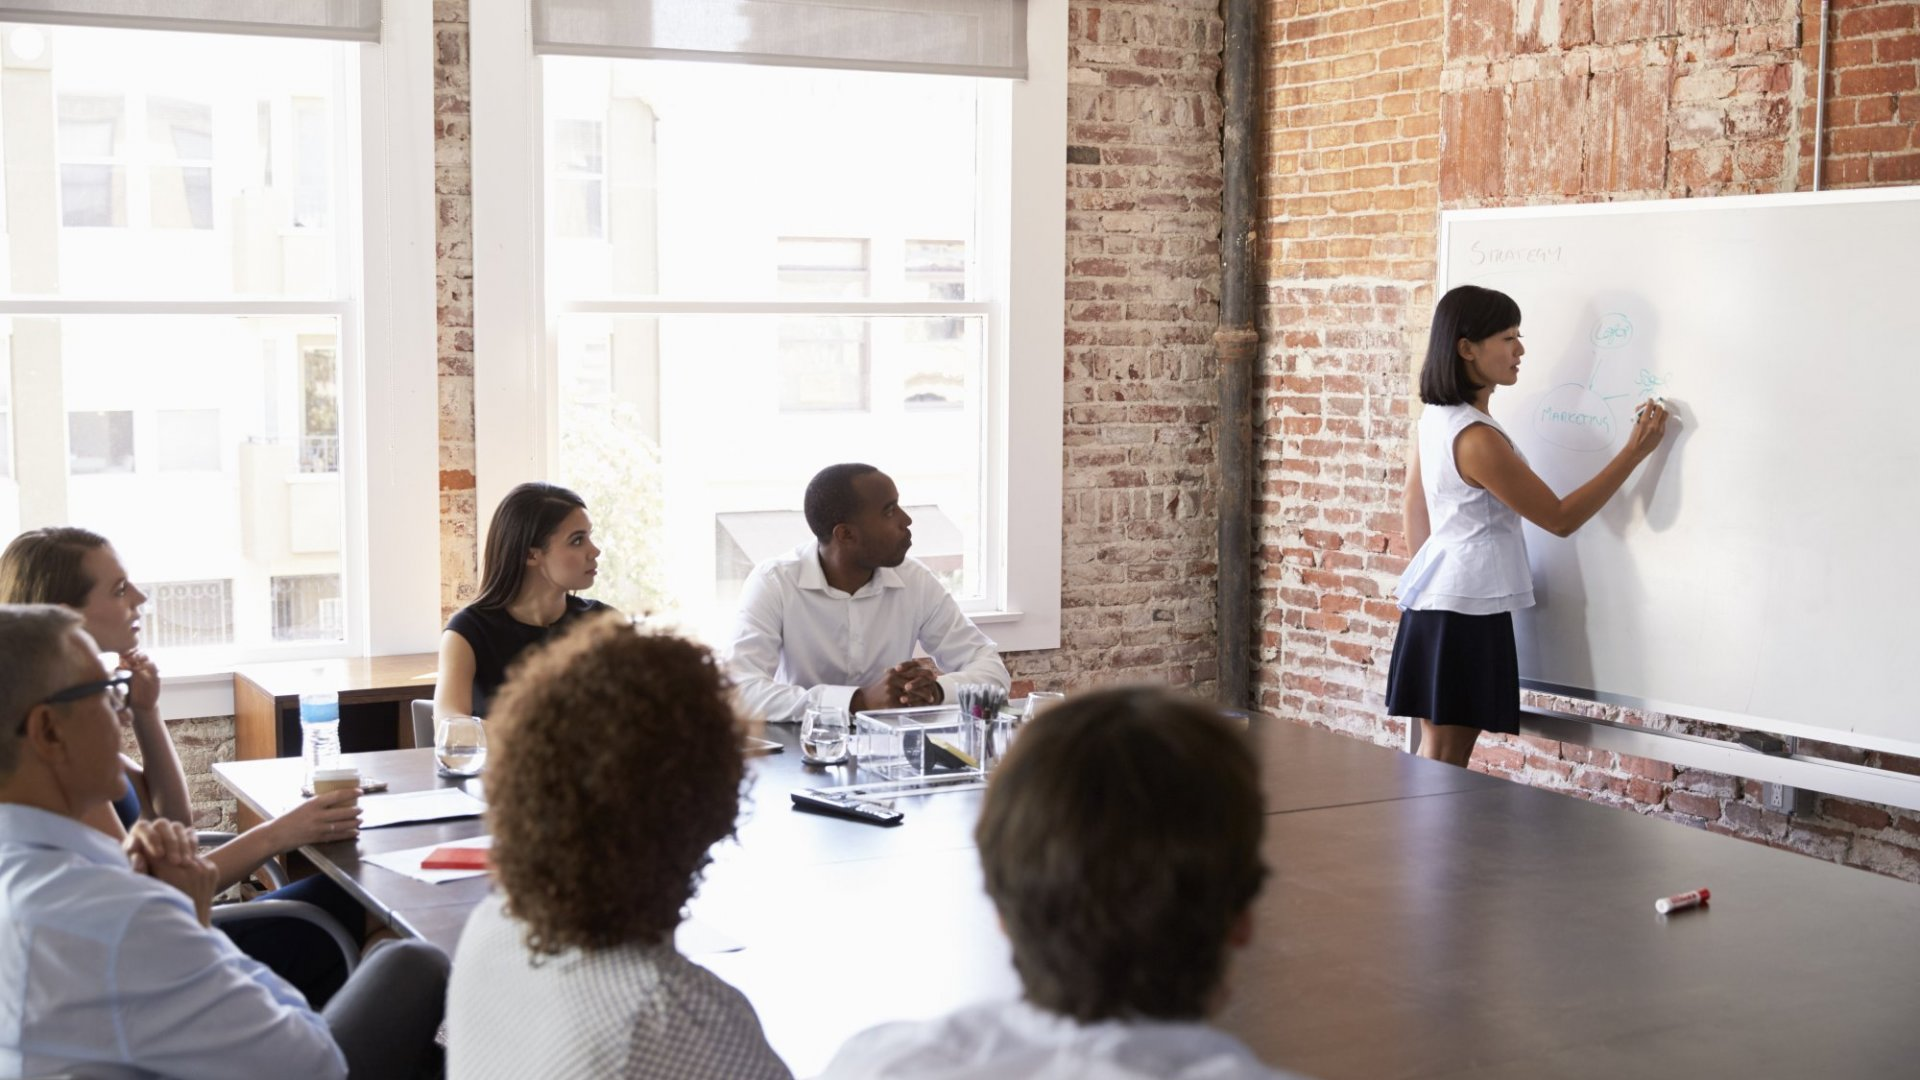 A 3-Point Checklist to Drastically Improve Your Meetings